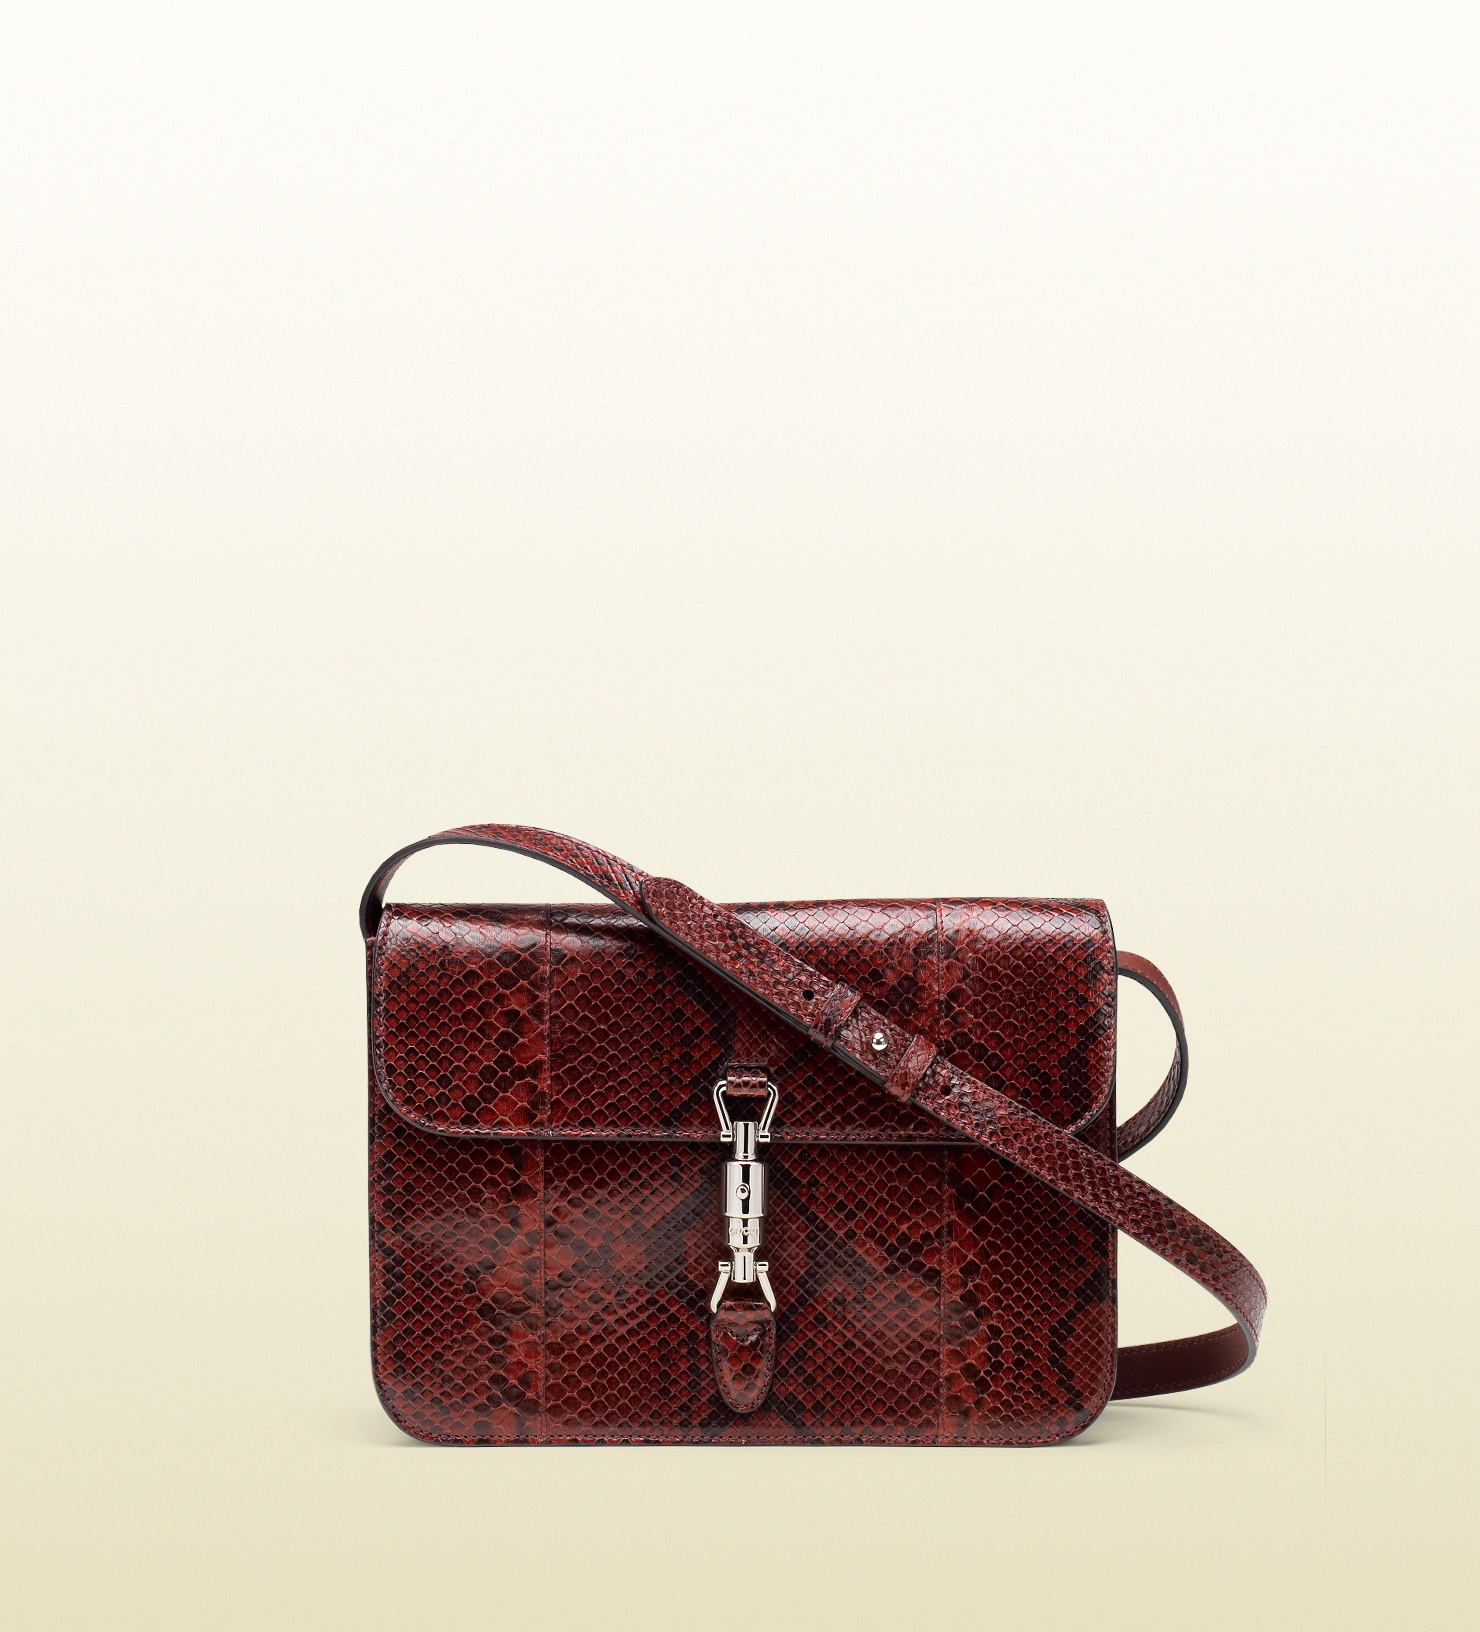 1cec00d18ad80b Gucci Jackie Soft Python Flap Shoulder Bag in Red - Lyst